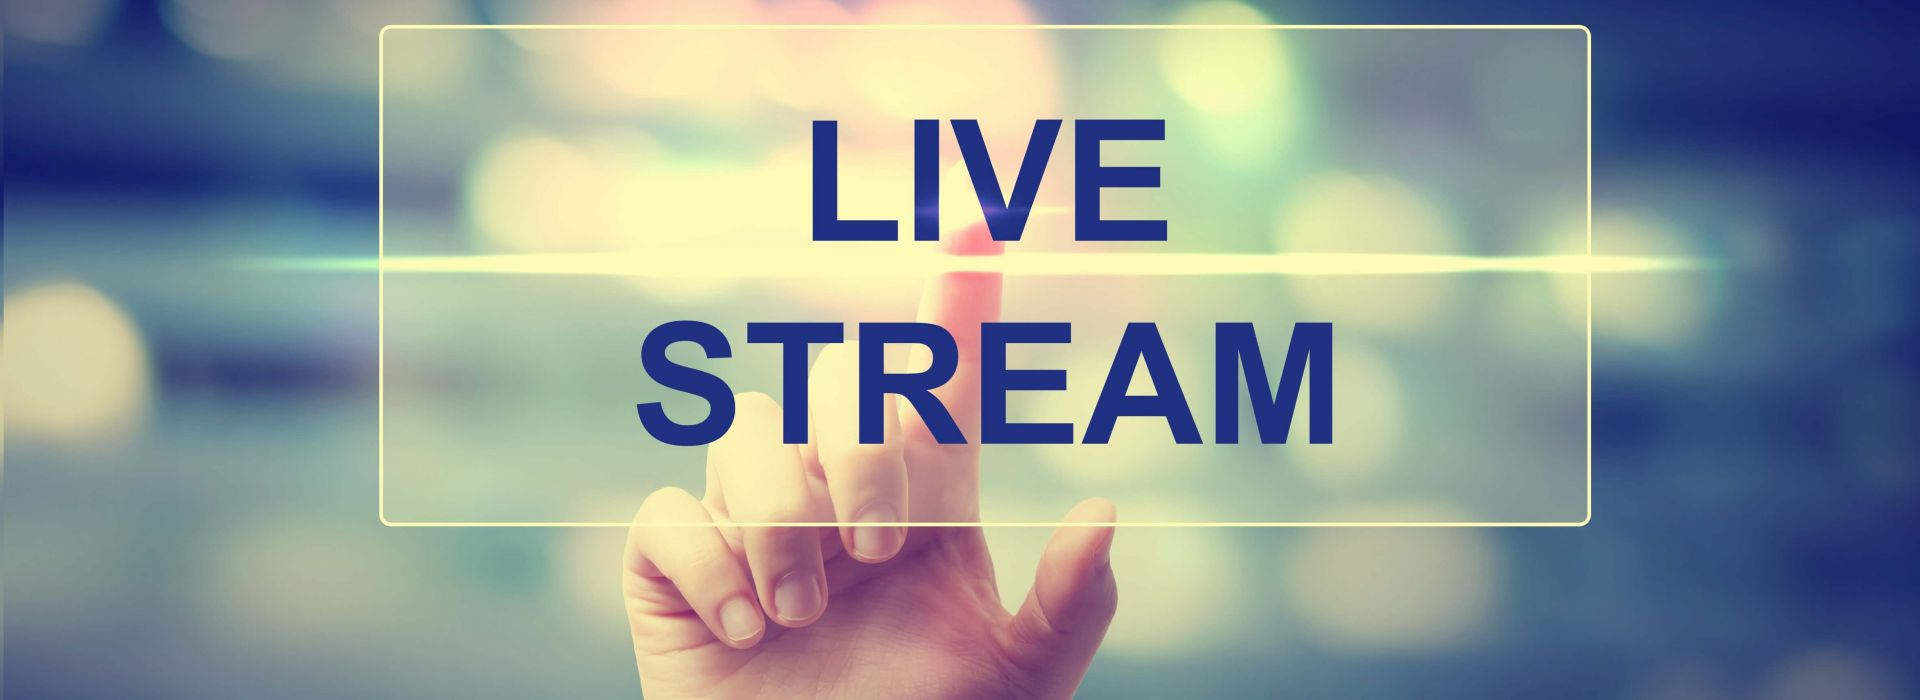 Digitale live events & live streaming